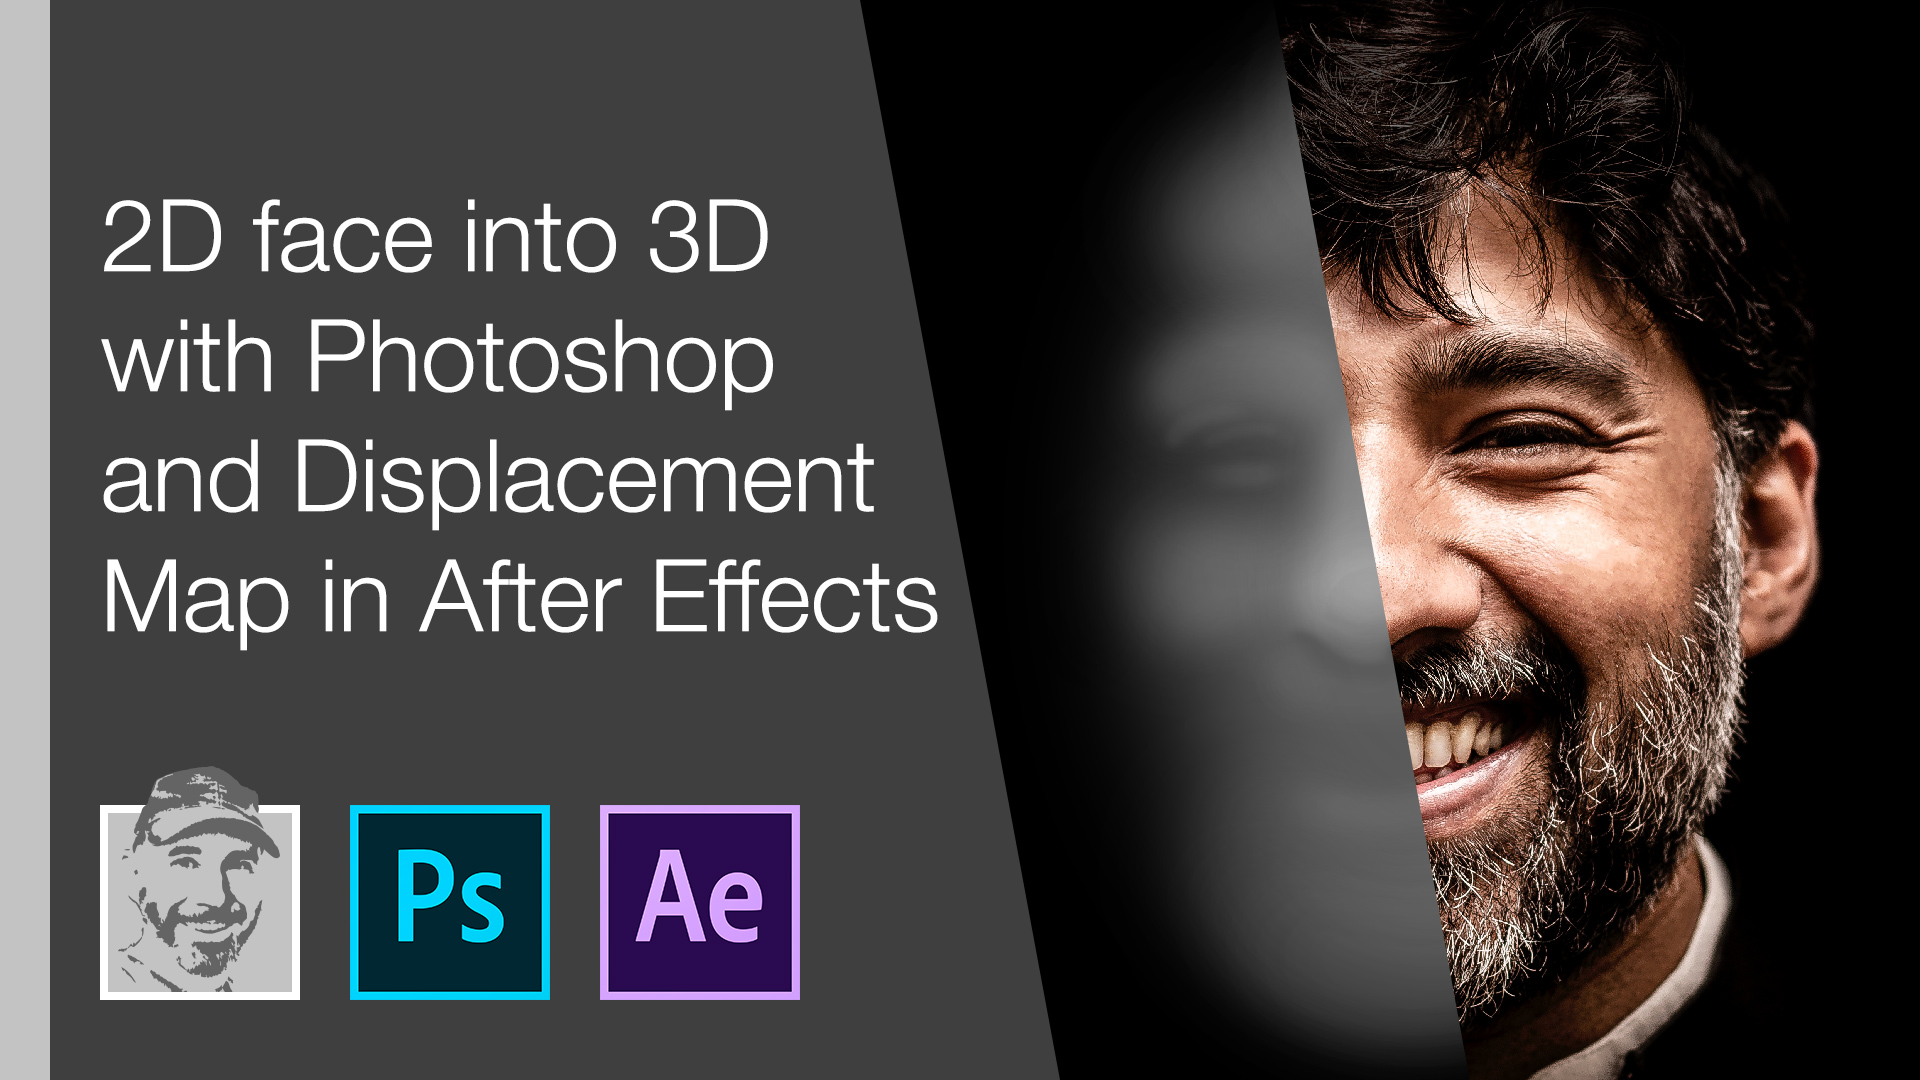 2d face into 3d with Photoshop and Displacement Map in After